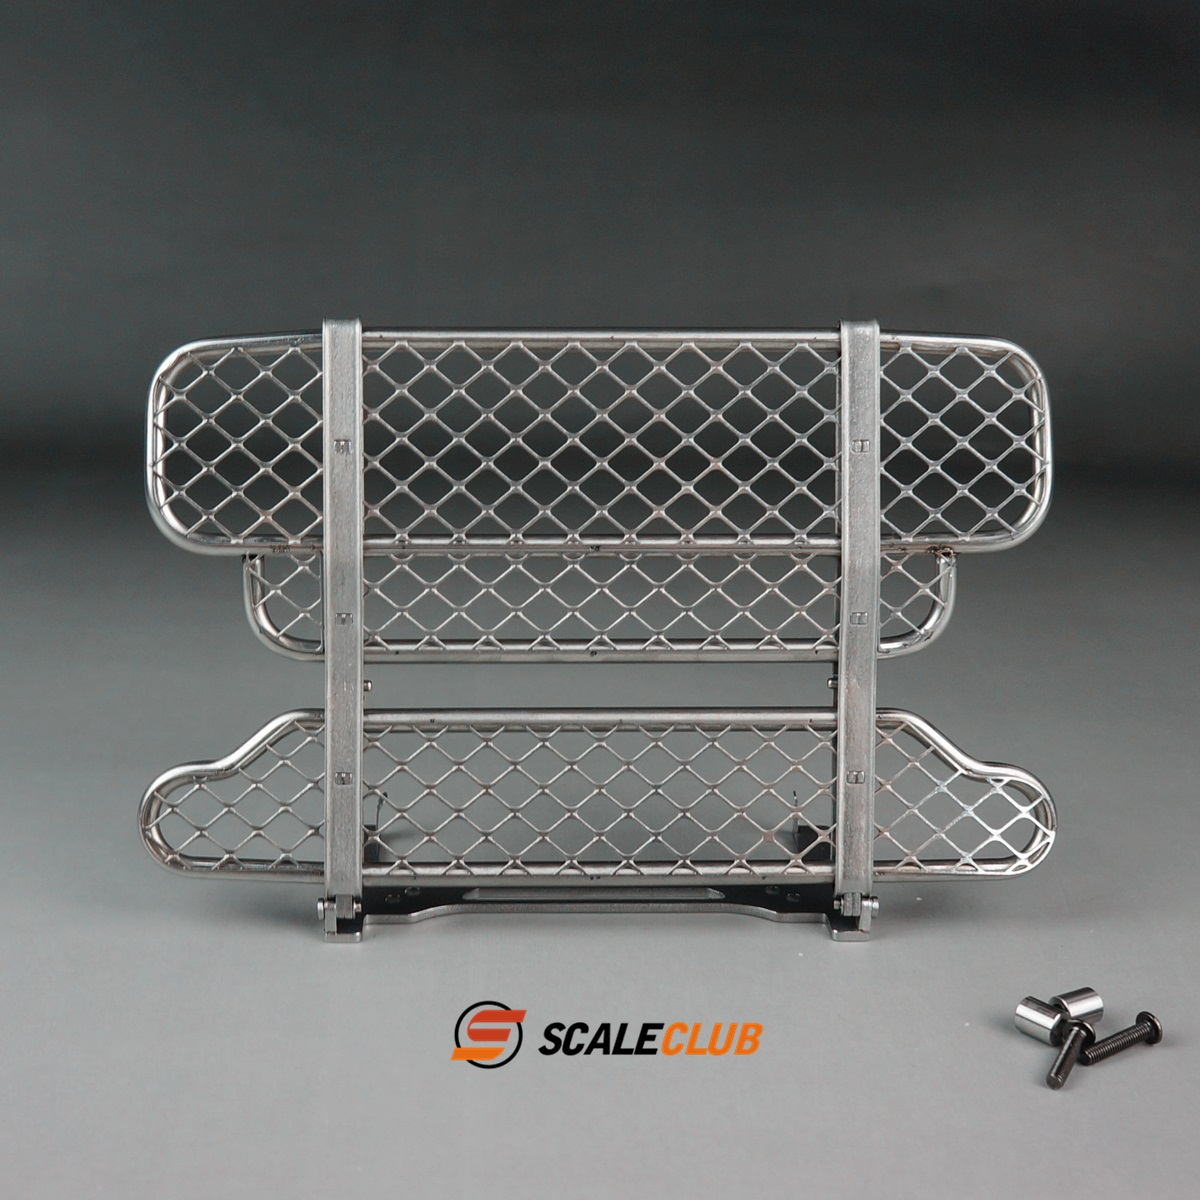 SCALECLUB  Scania  Metal Stainless Steel Anti-collision Hurdle Cattle Hurdle